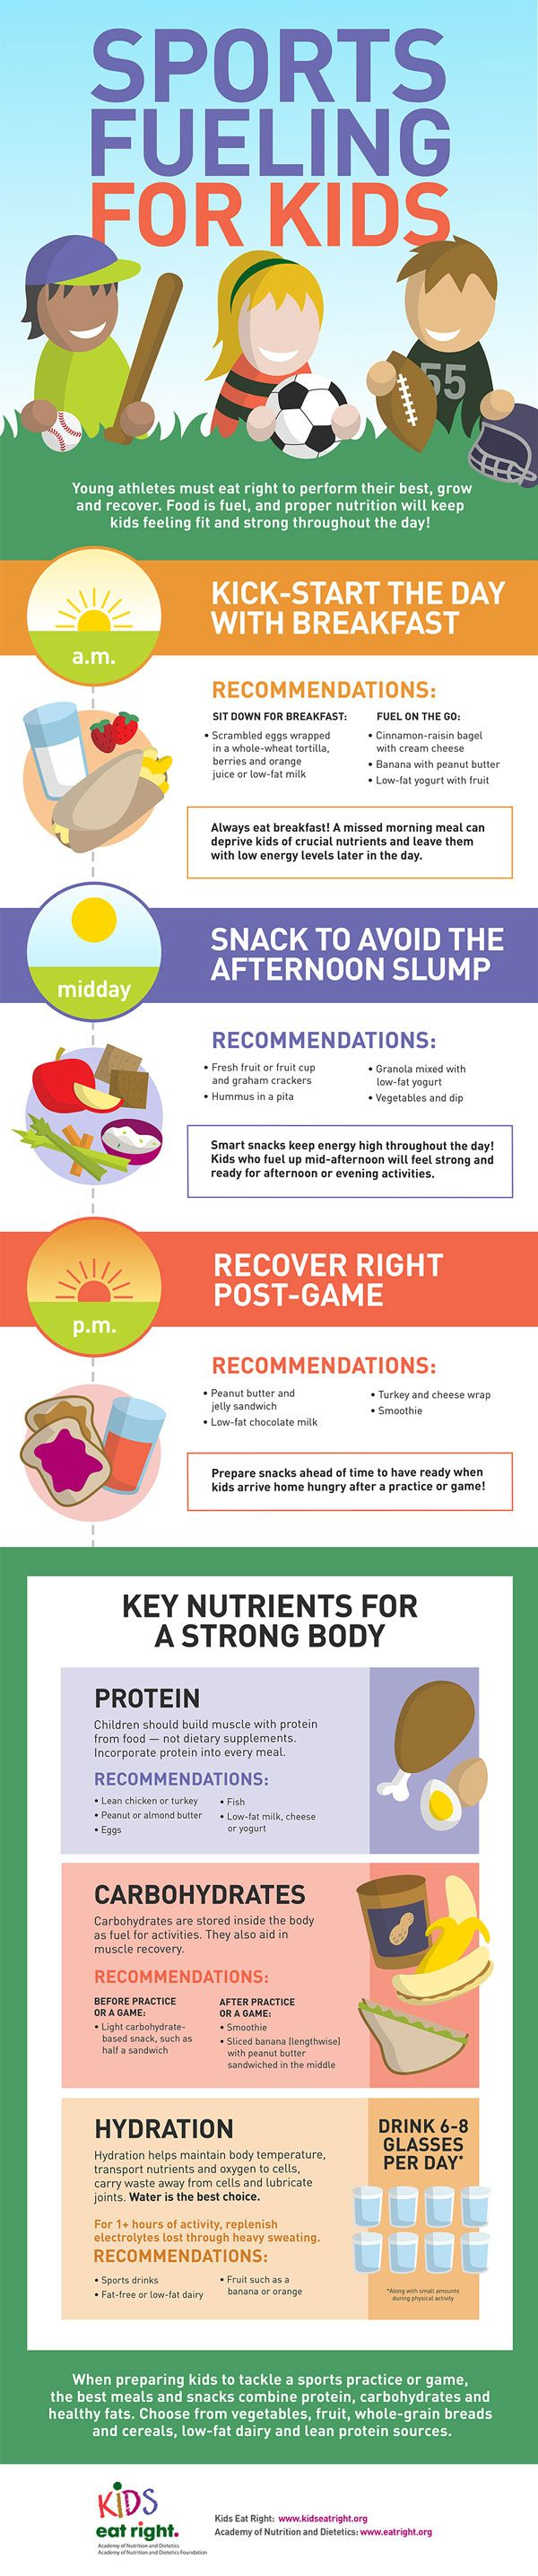 Learn about nutrition with this infographic from the Academy of Nutrition and Dietetics to learn about feeding kids the right thing for sports! #EatWell